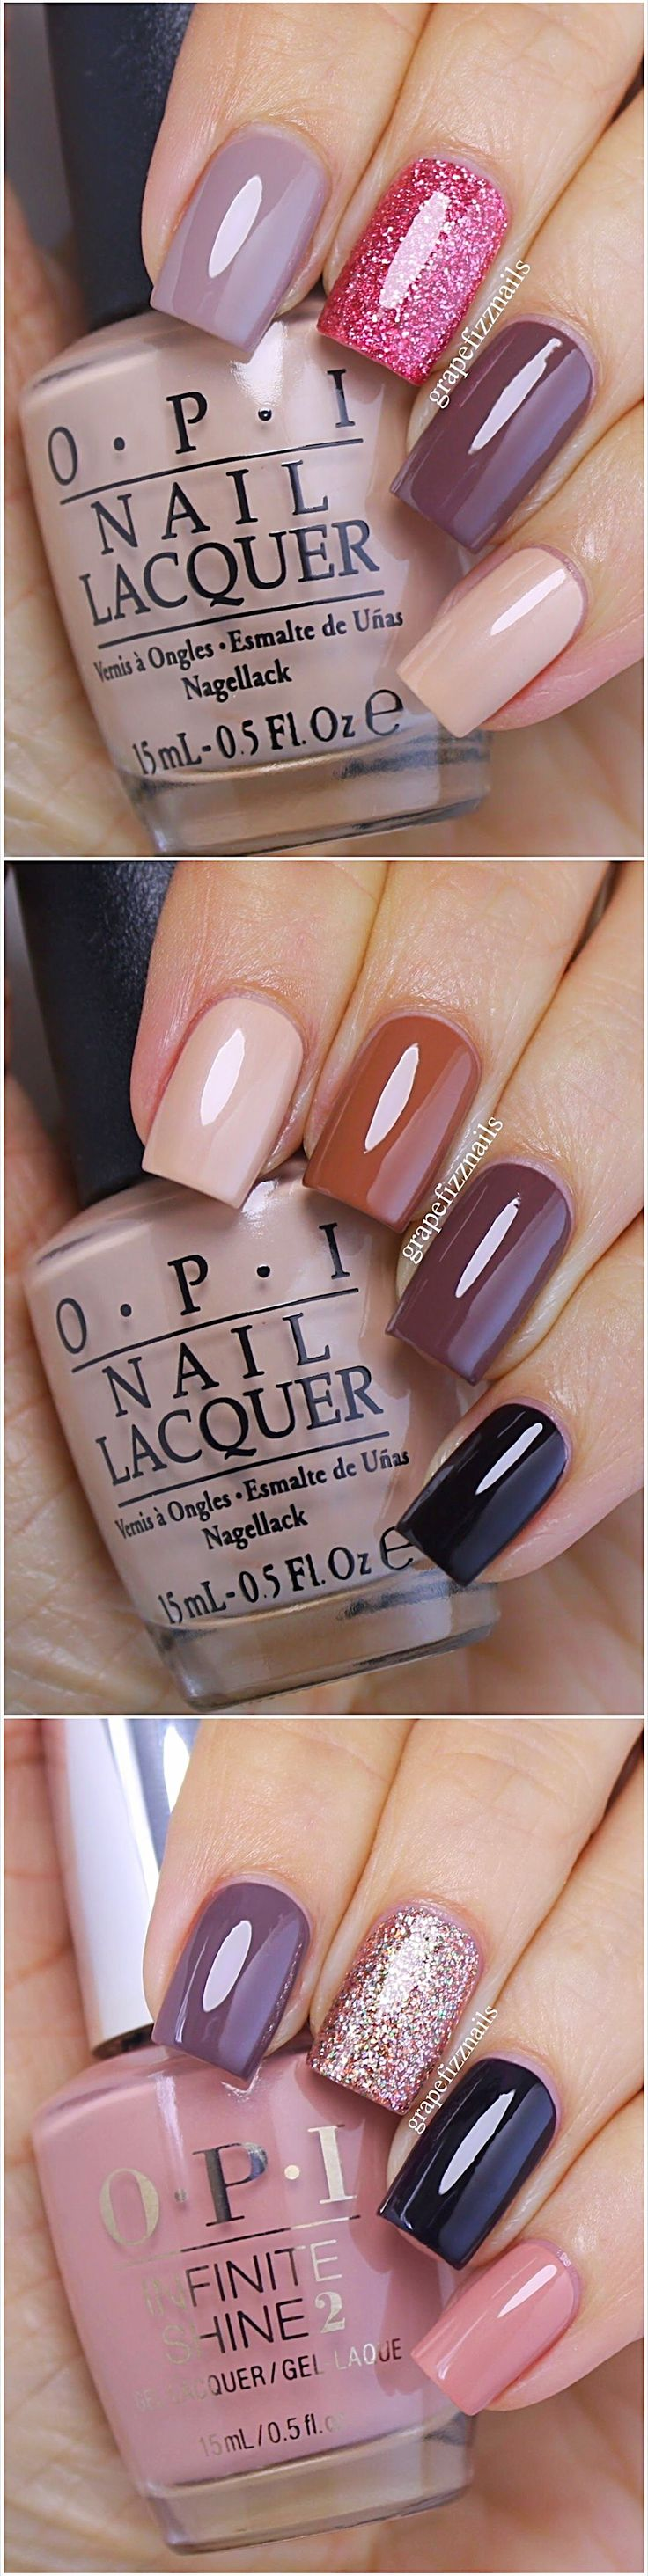 OPI Nail Polish Color Swatches  @grapefizznails